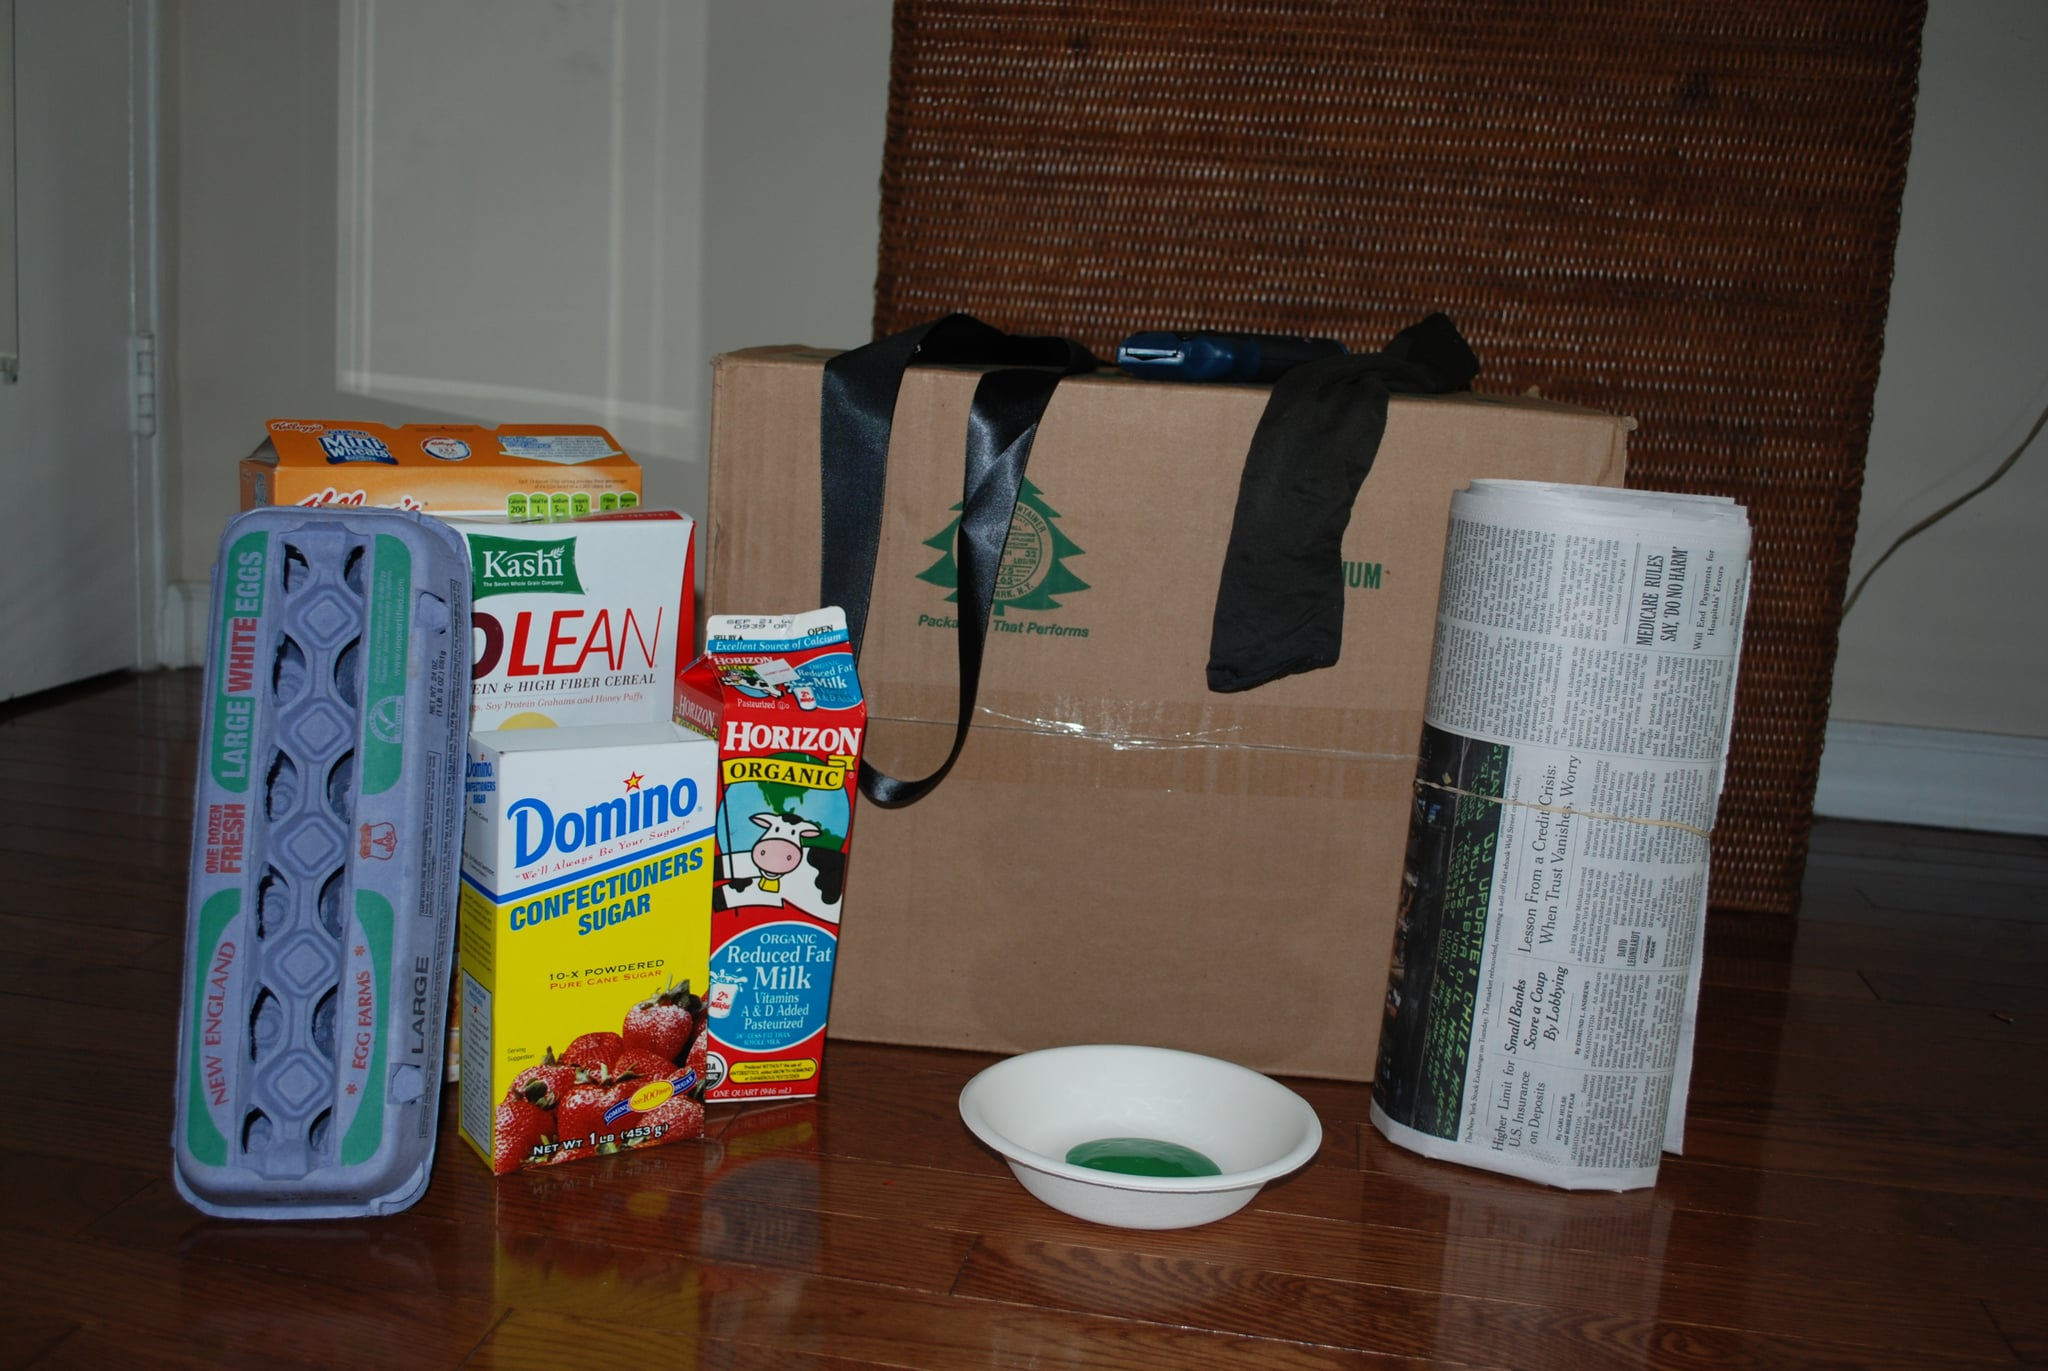 These are the supplies you will need to create the costume.